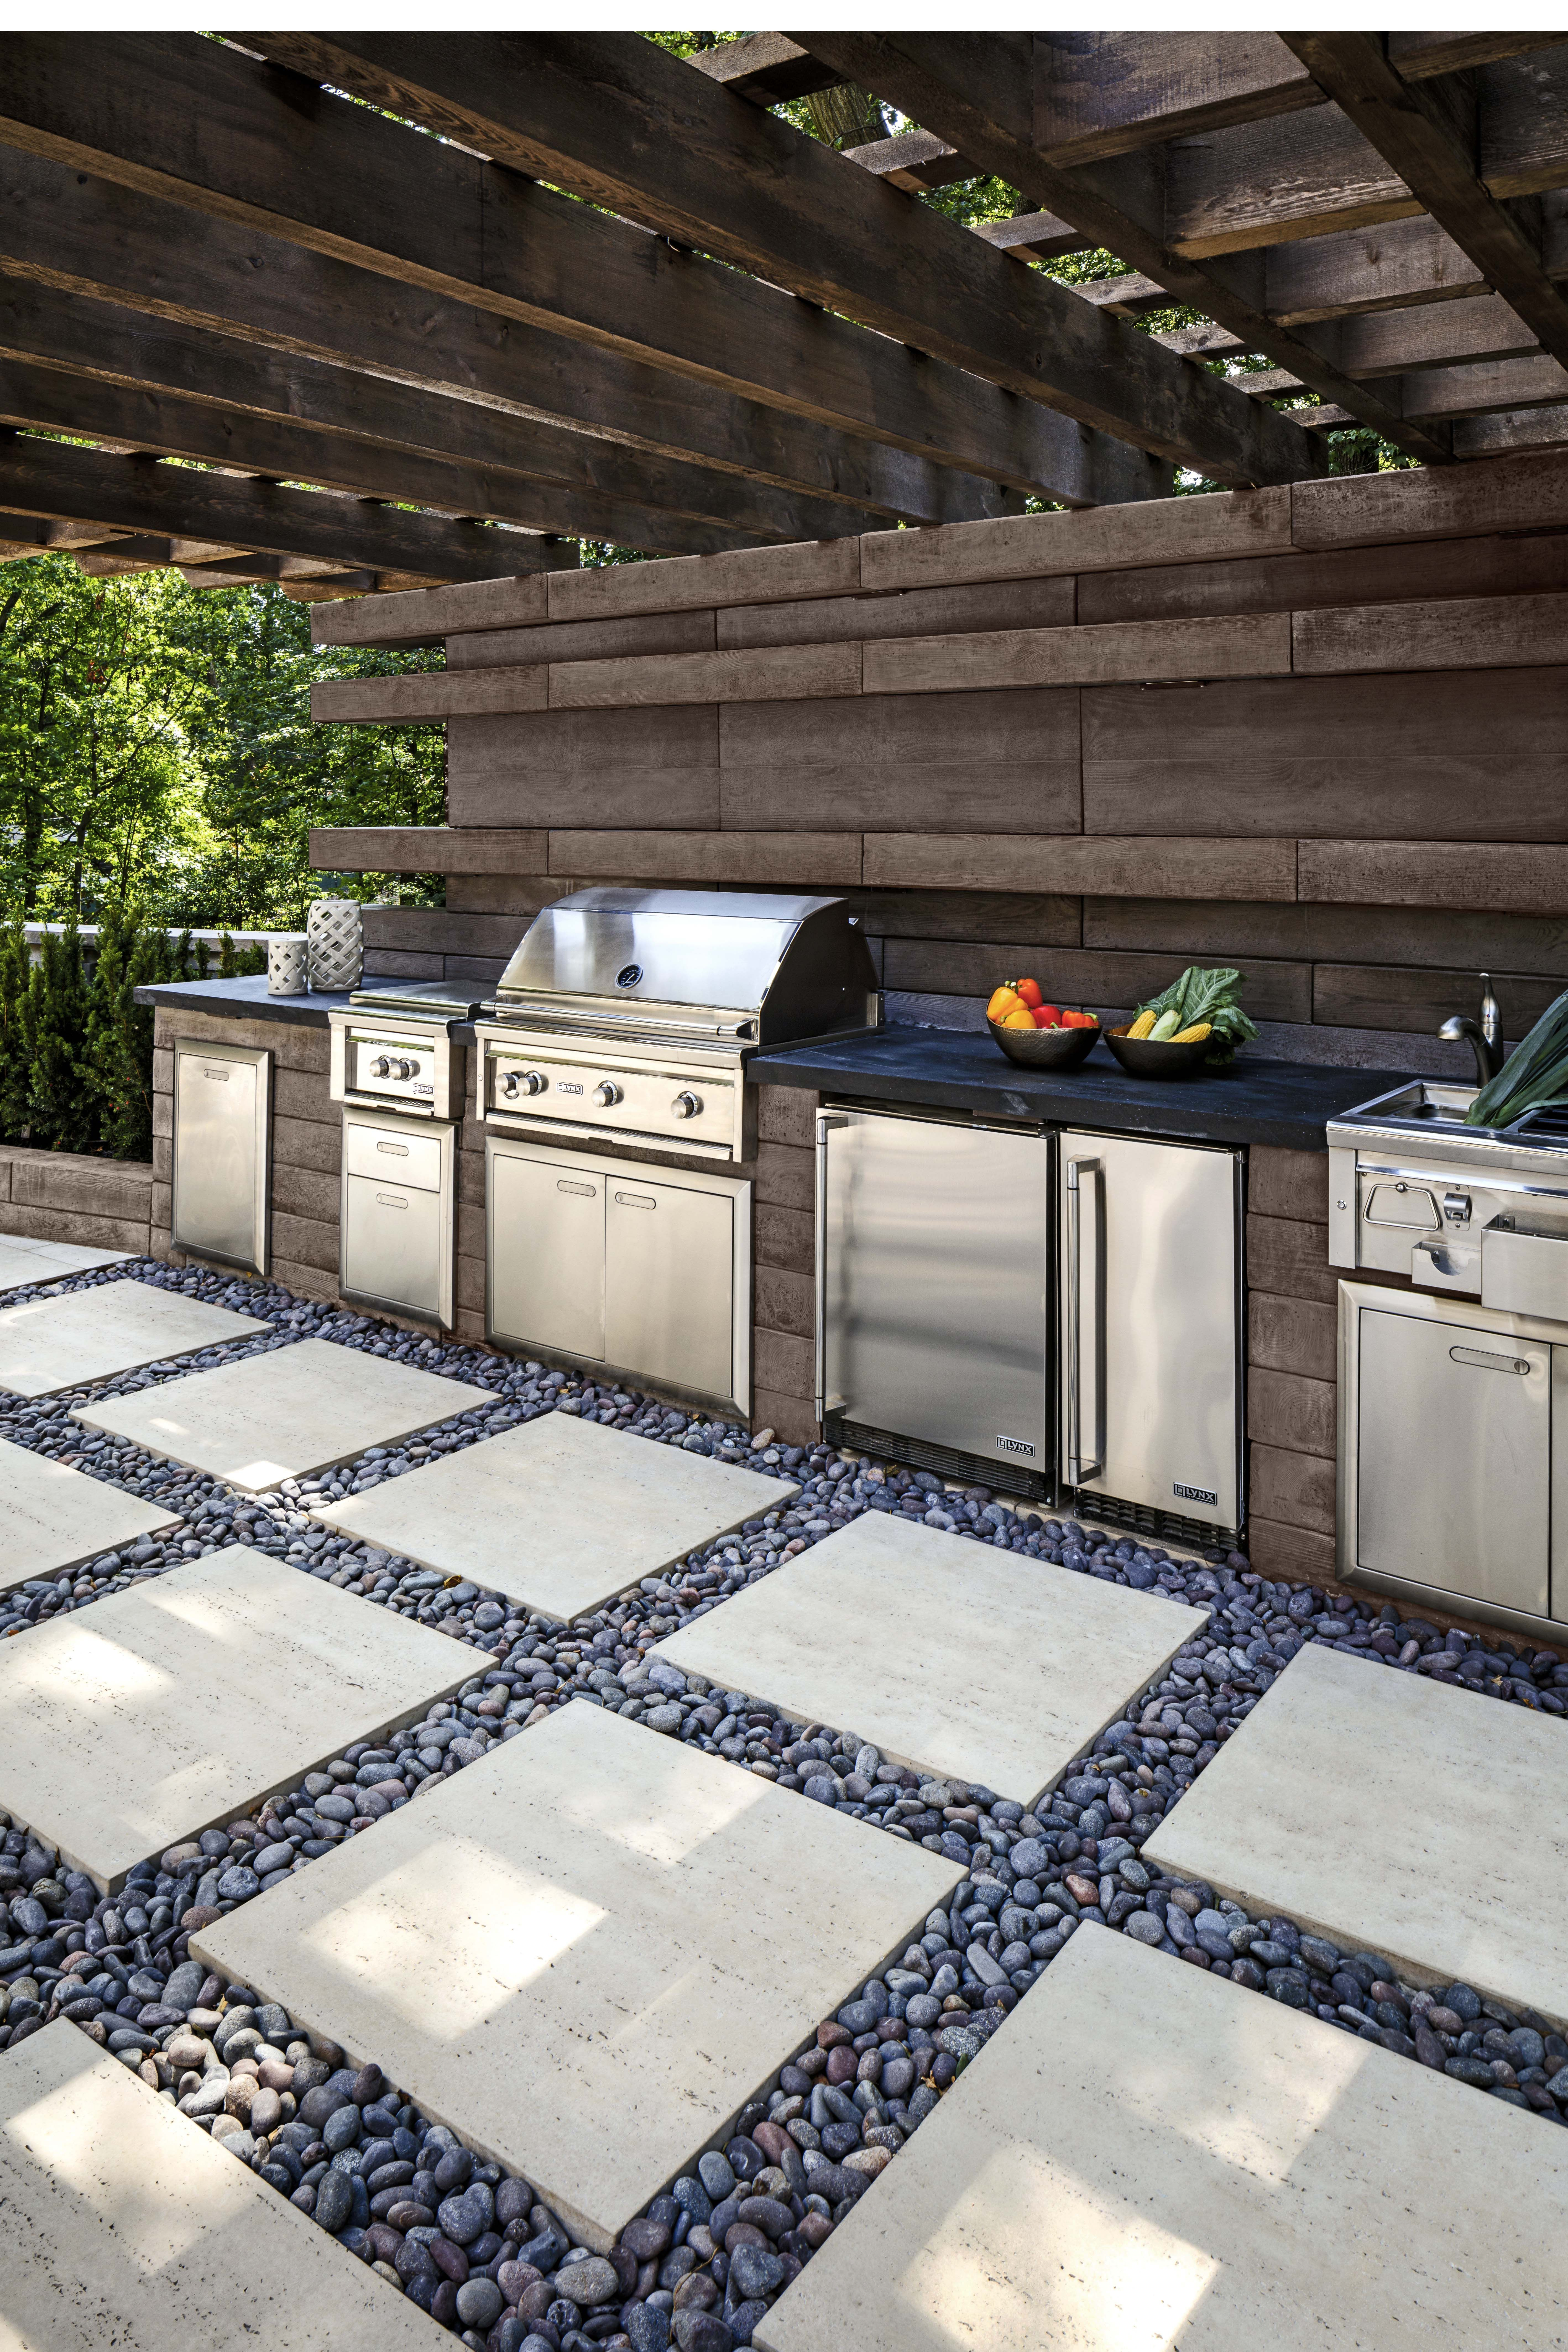 Looking For A An Outdoor Kitchen Idea For This Landscape Project The Borealis Wall Was Used For T Diy Outdoor Kitchen Backyard Kitchen Outdoor Kitchen Design